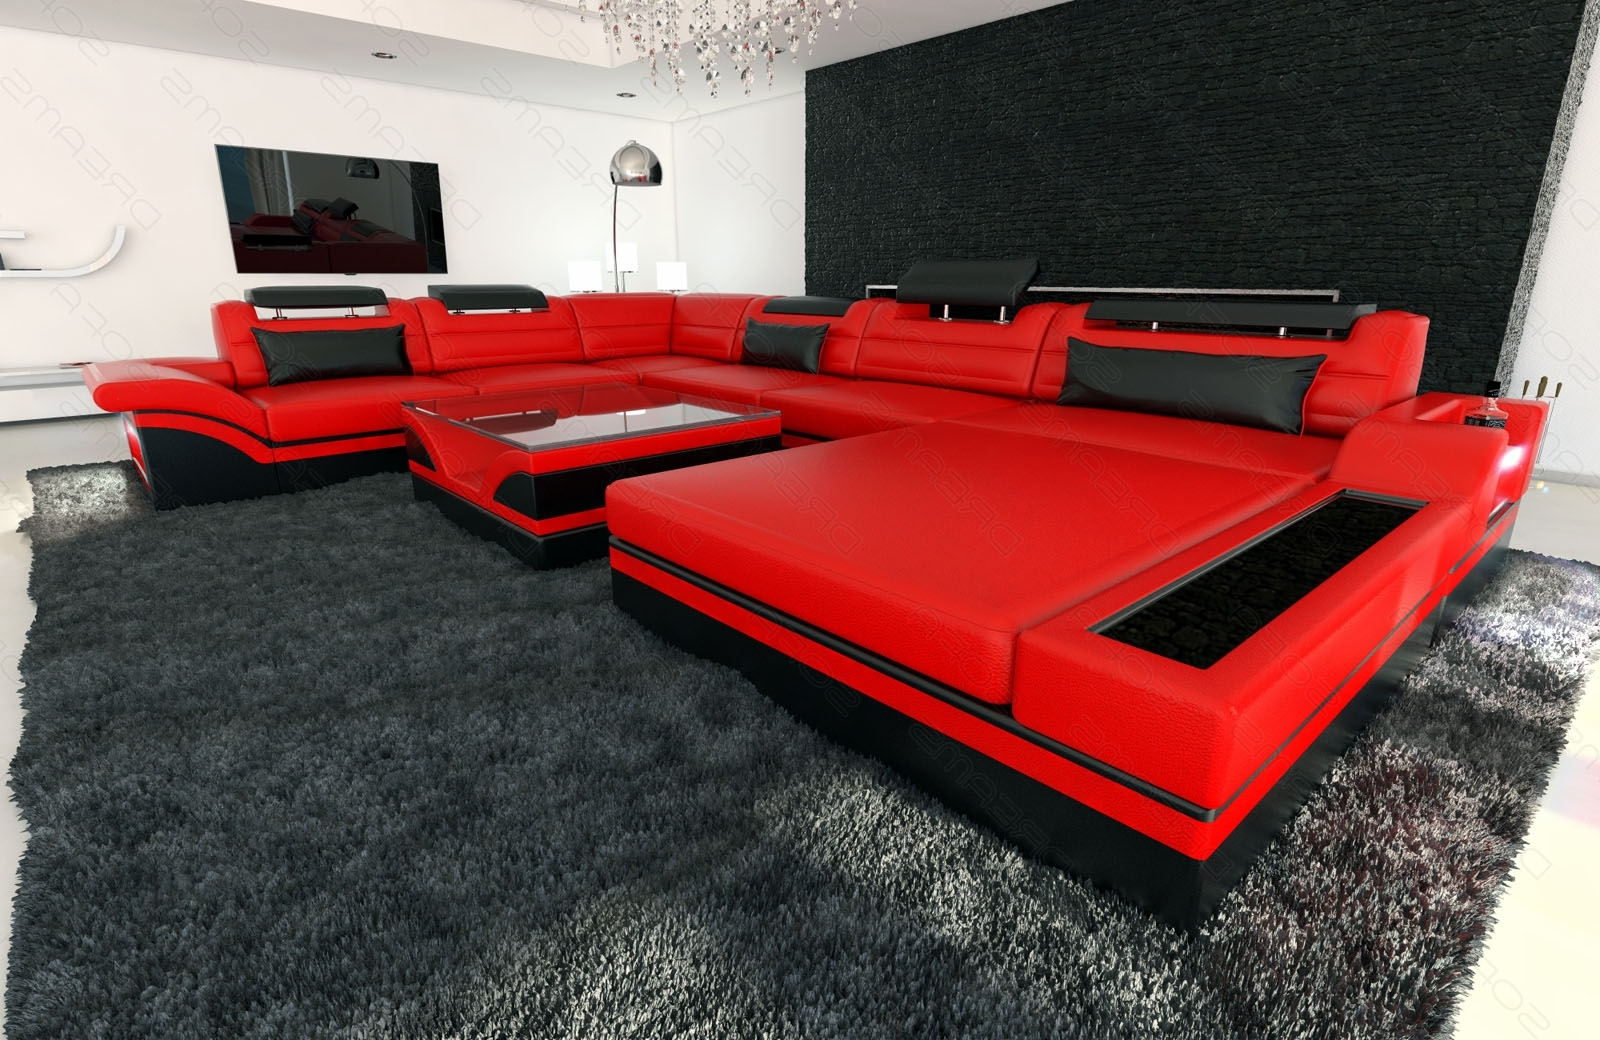 Well Known Design Sectional Sofa Mezzo Xxl With Led Lights Red Black (View 2 of 15)